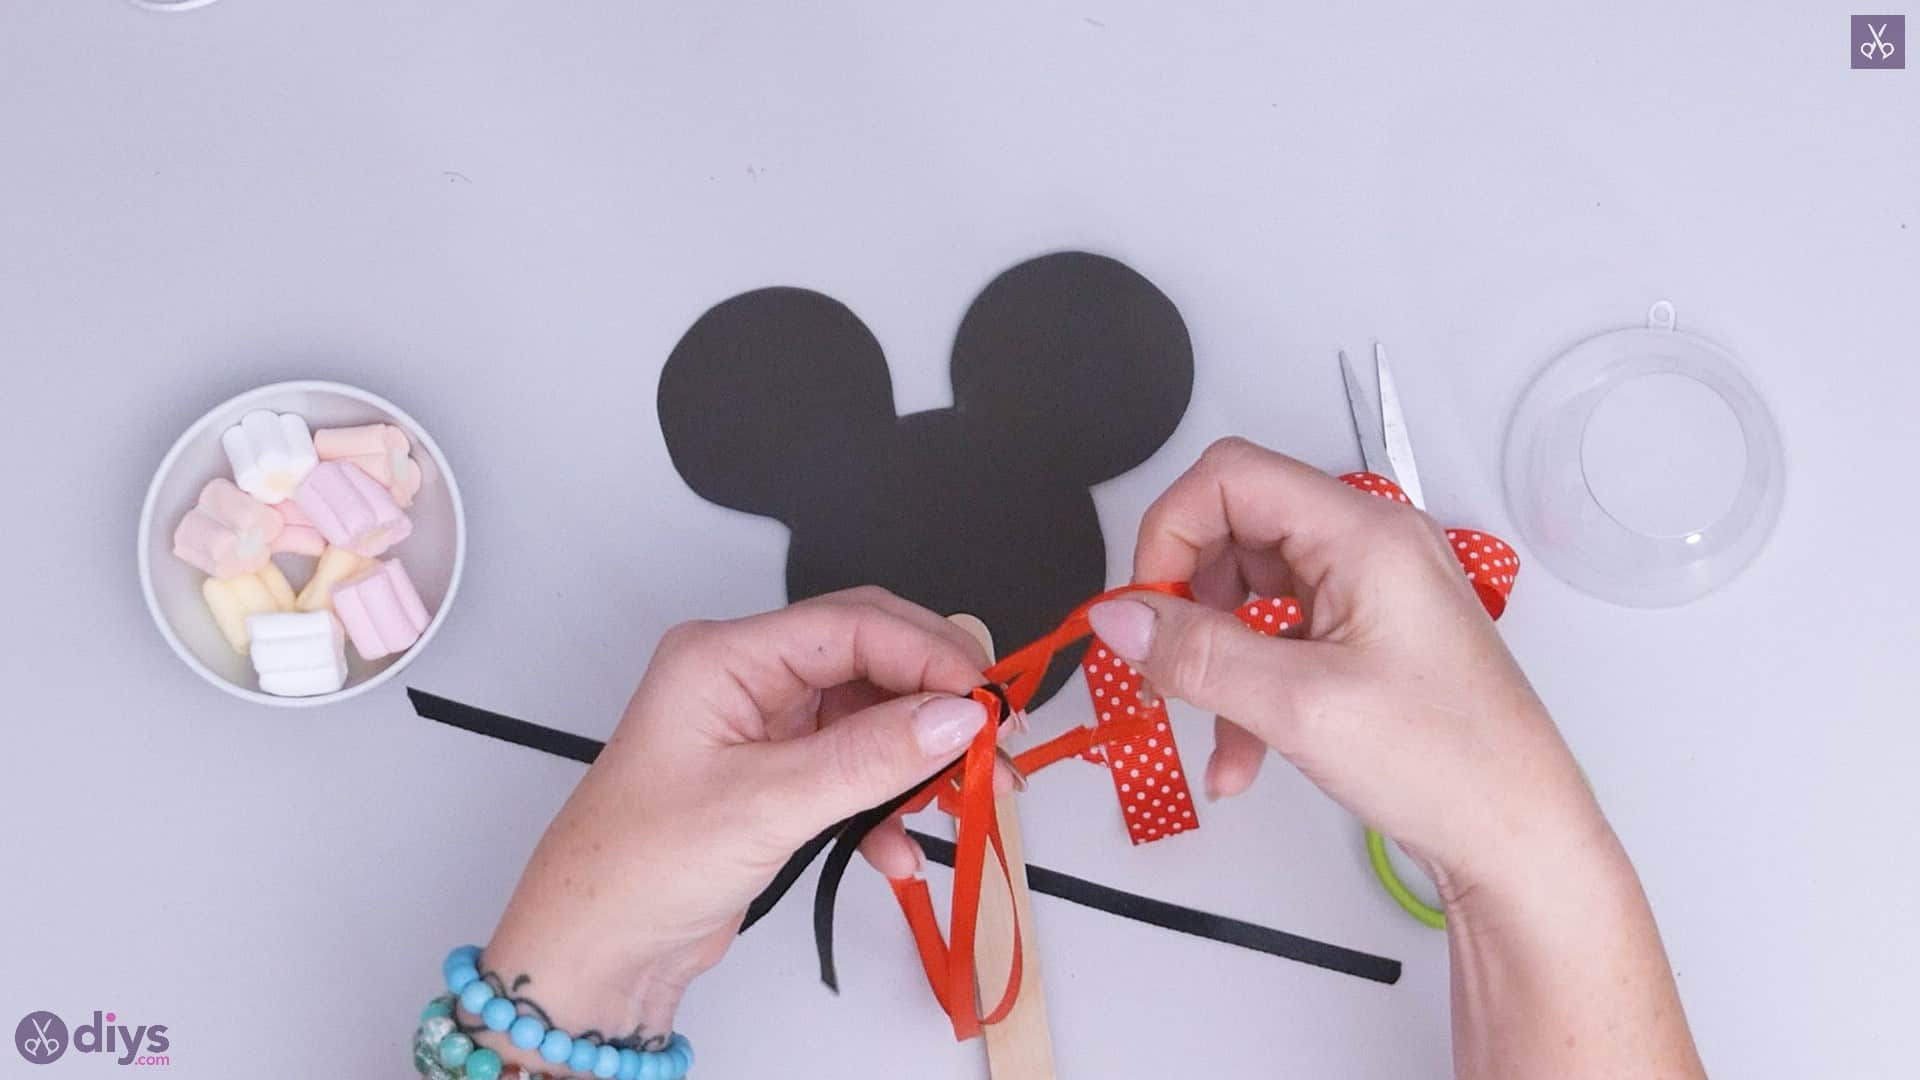 Diy minnie mouse candy holder step 5a